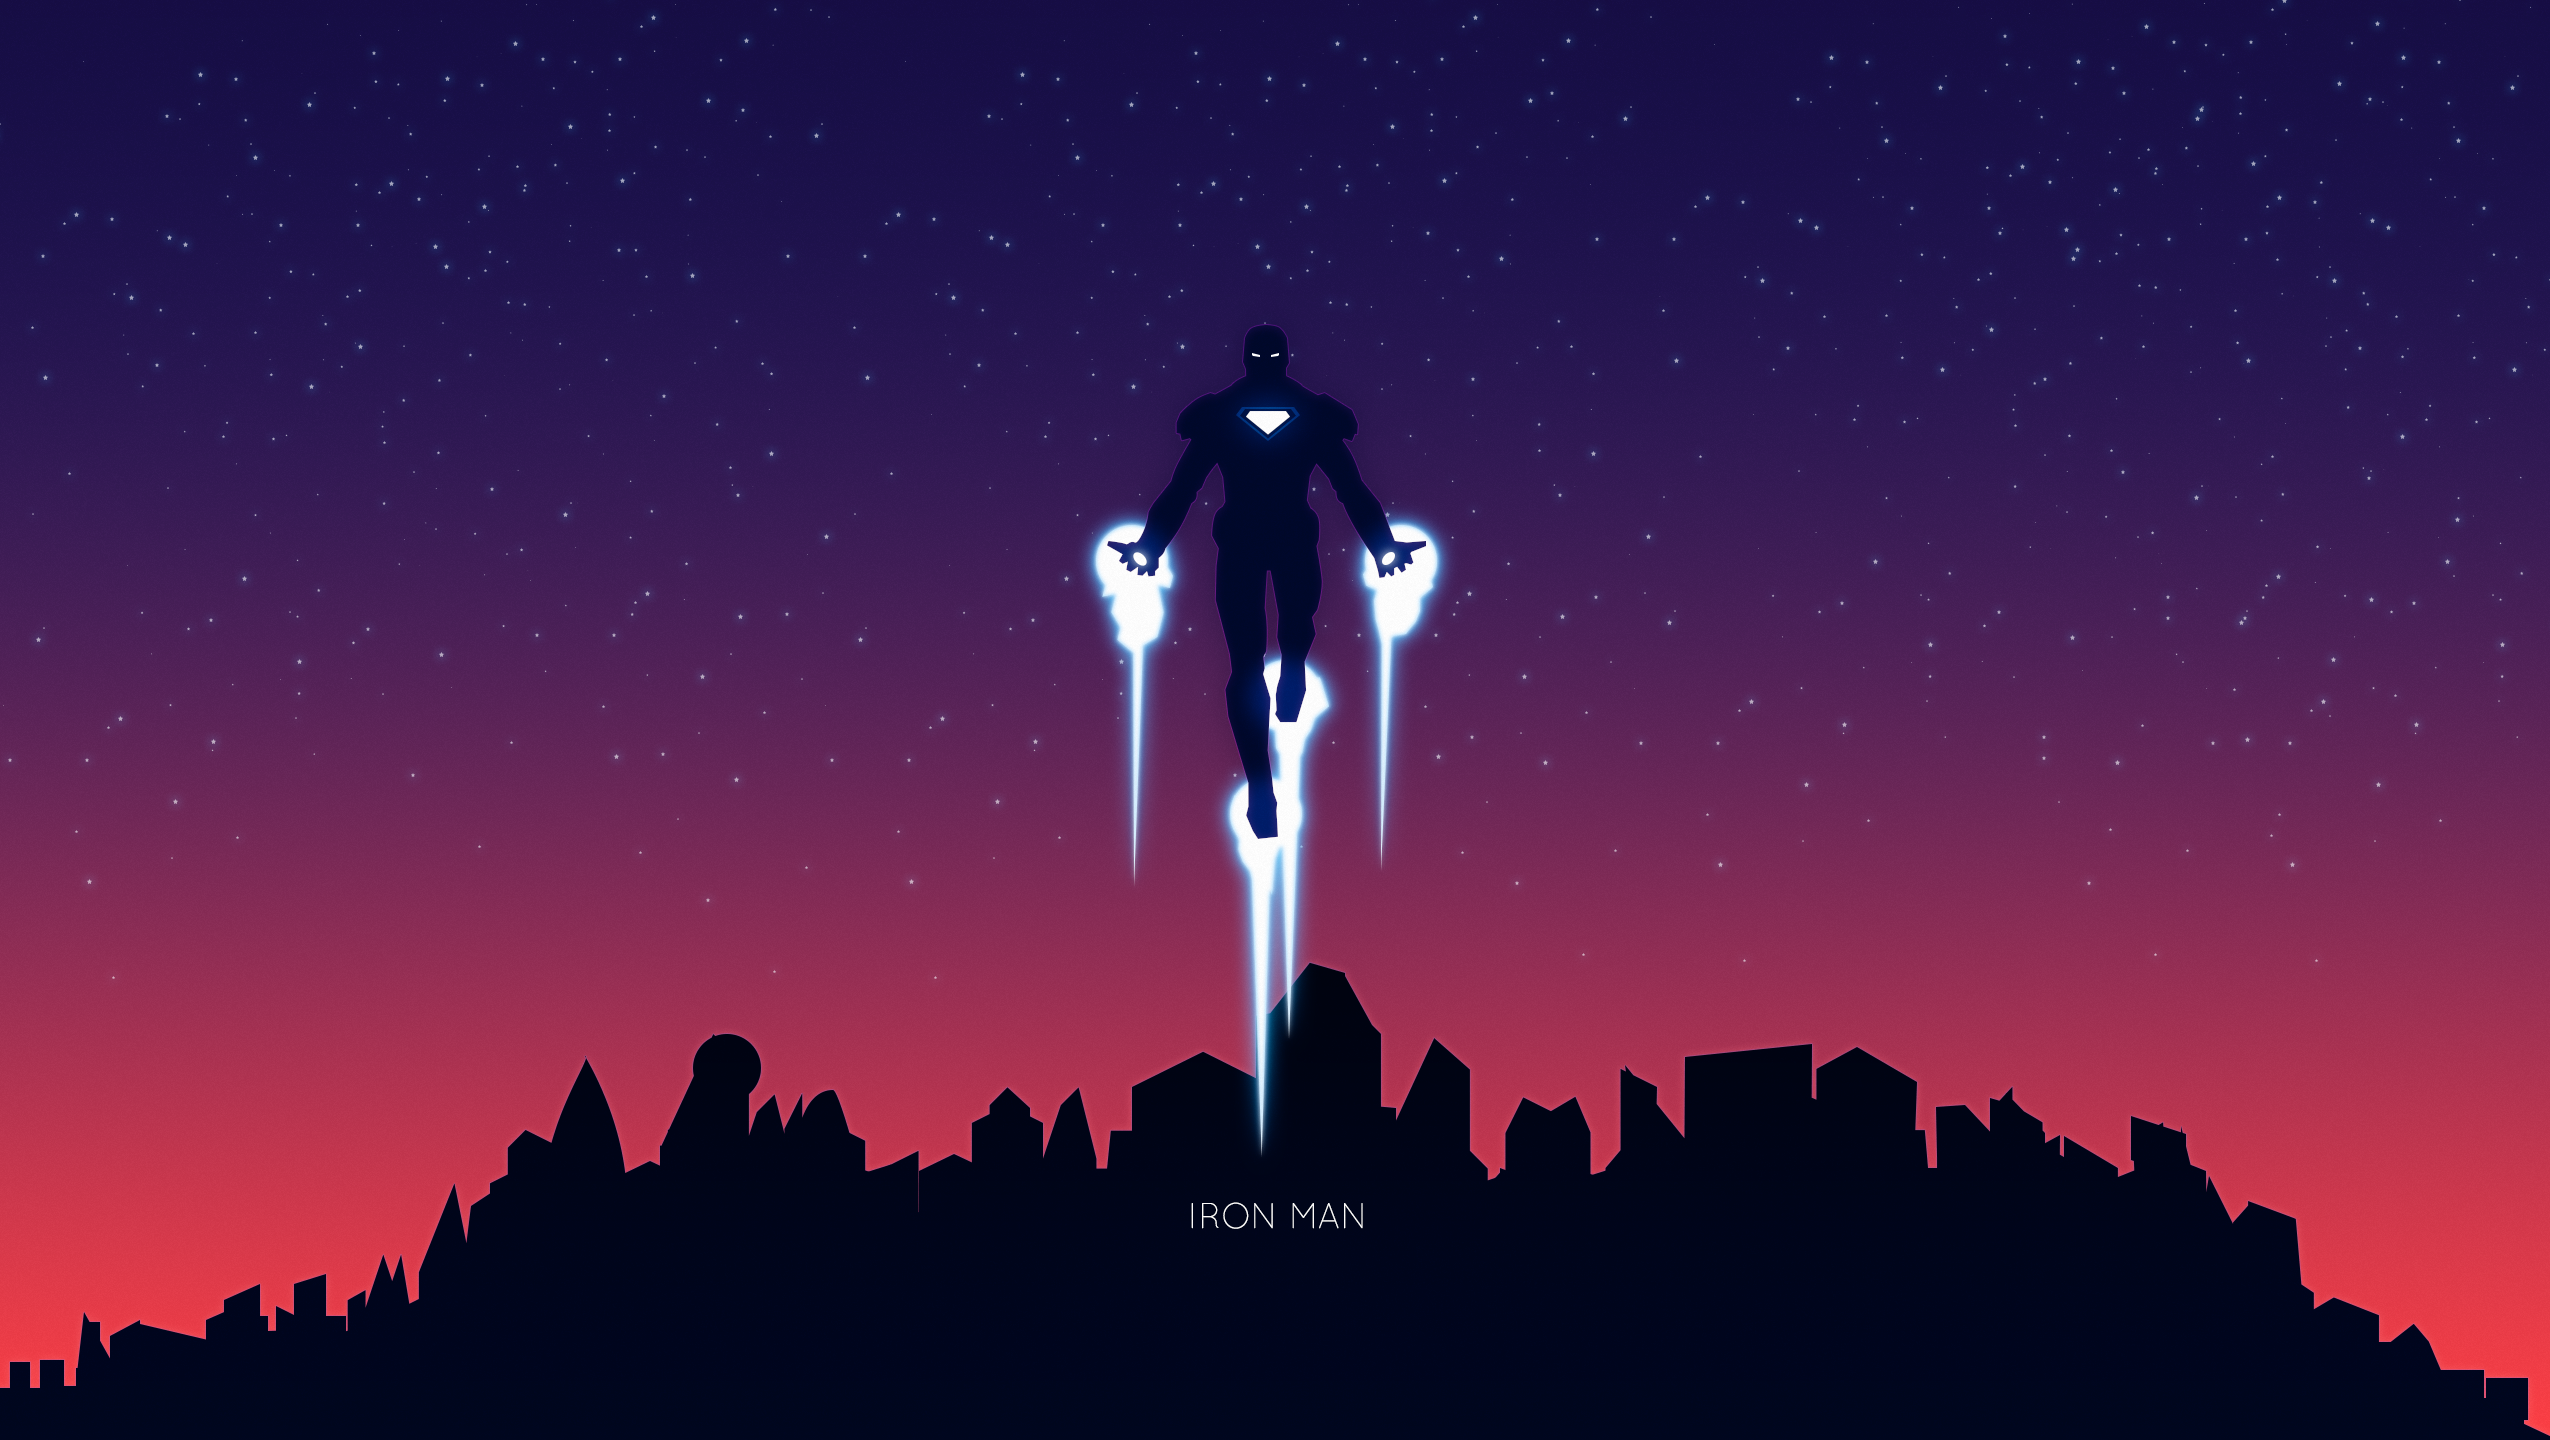 Ironman Images High Definition 2550x1440 px